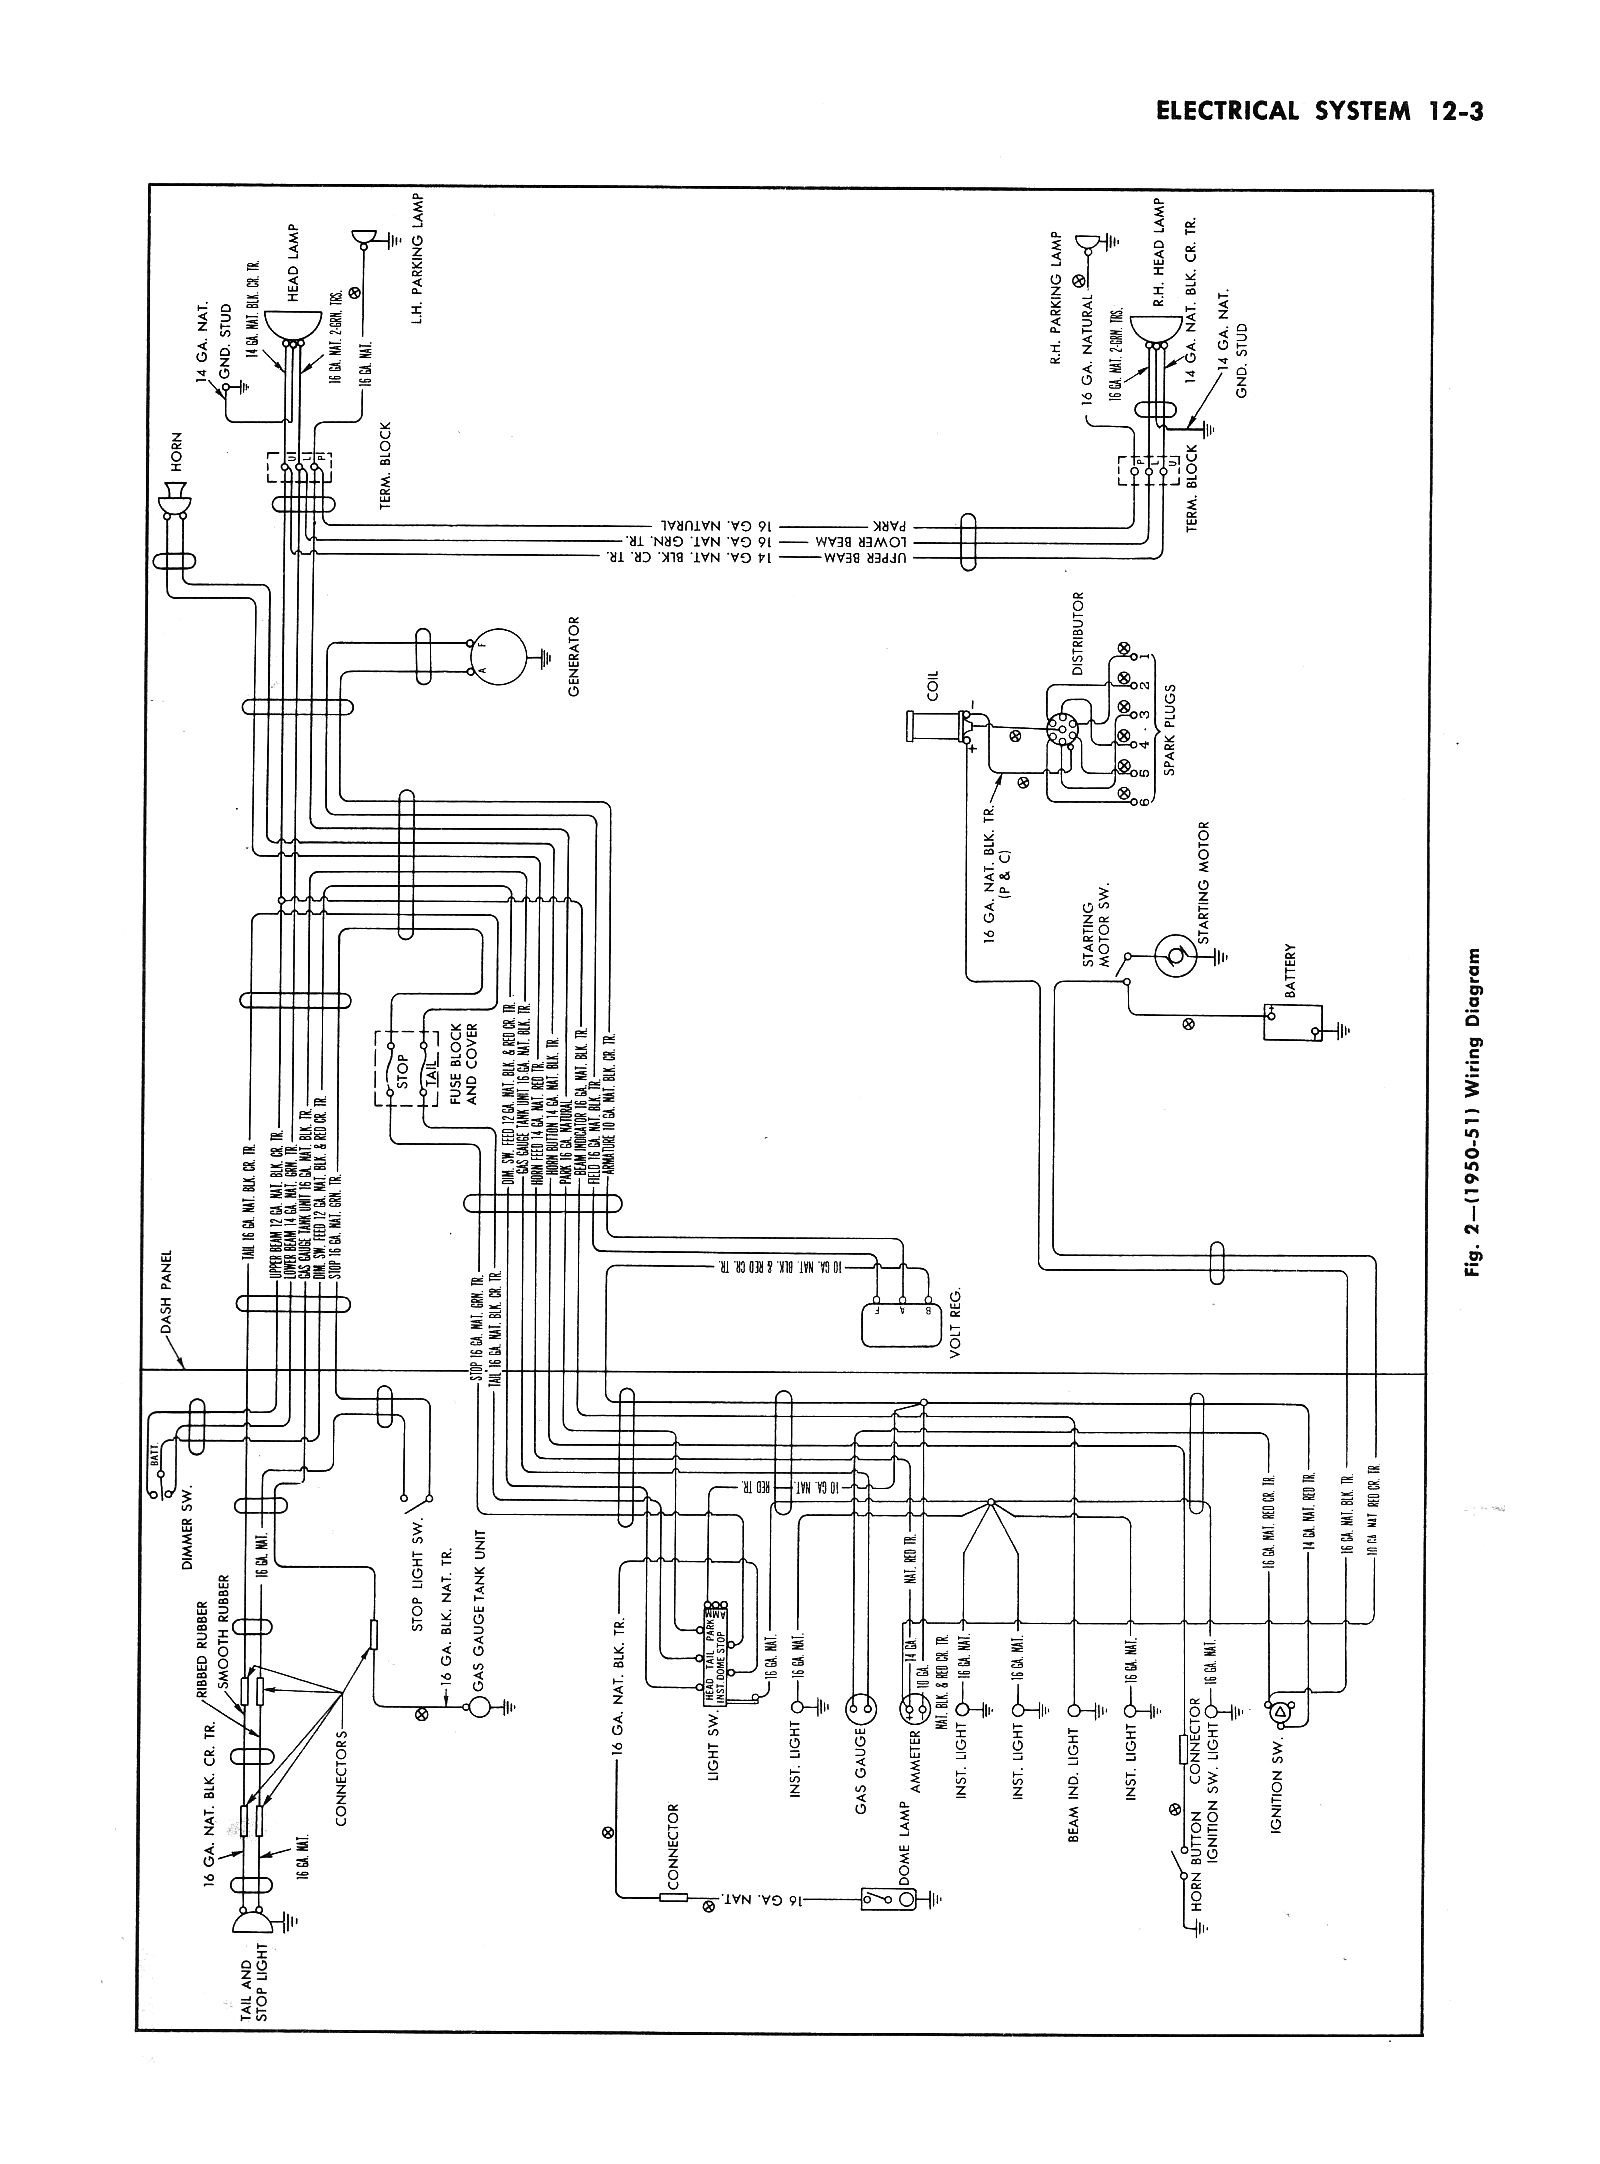 3100 V6 Engine Wiring Diagram Great Installation Of Gm Coolant Chevy Diagrams Rh Oldcarmanualproject Com Sfi Specs 3800